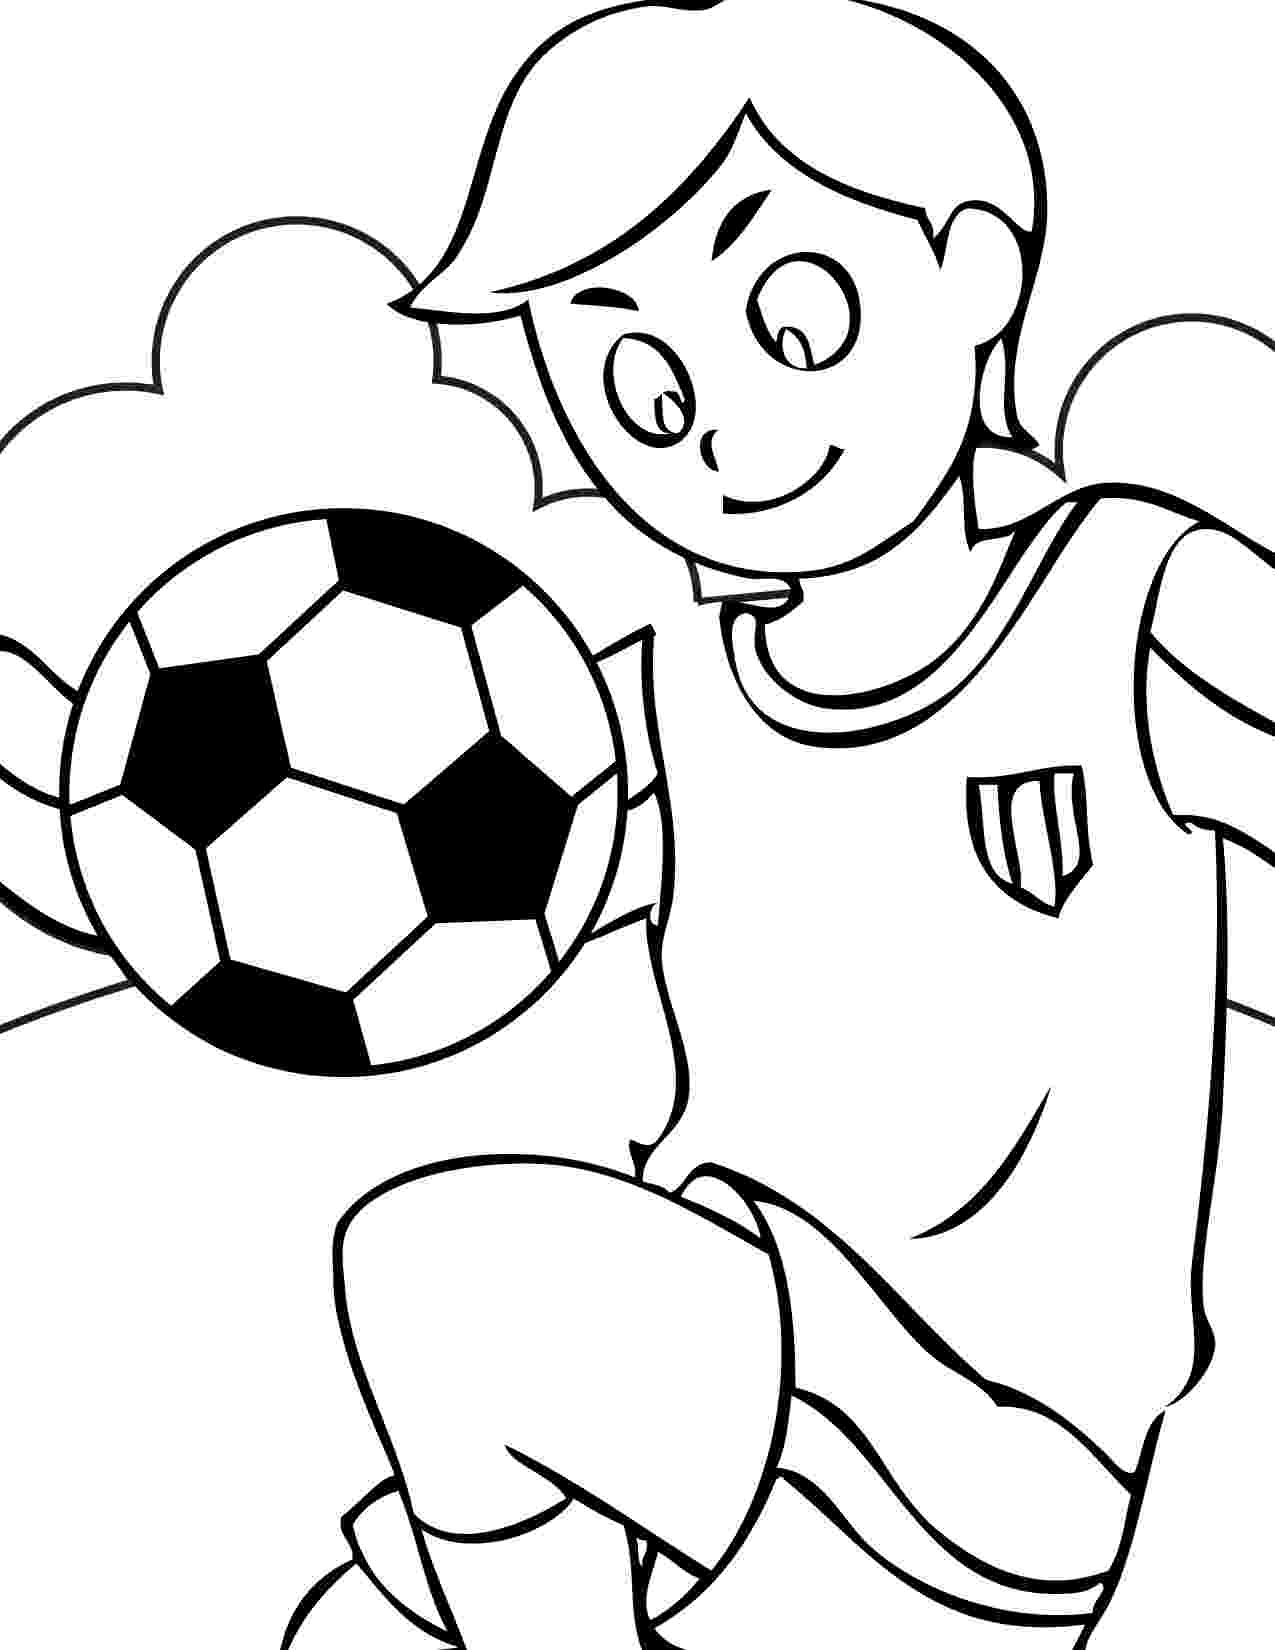 soccer coloring pages free printable soccer coloring pages for kids pages soccer coloring